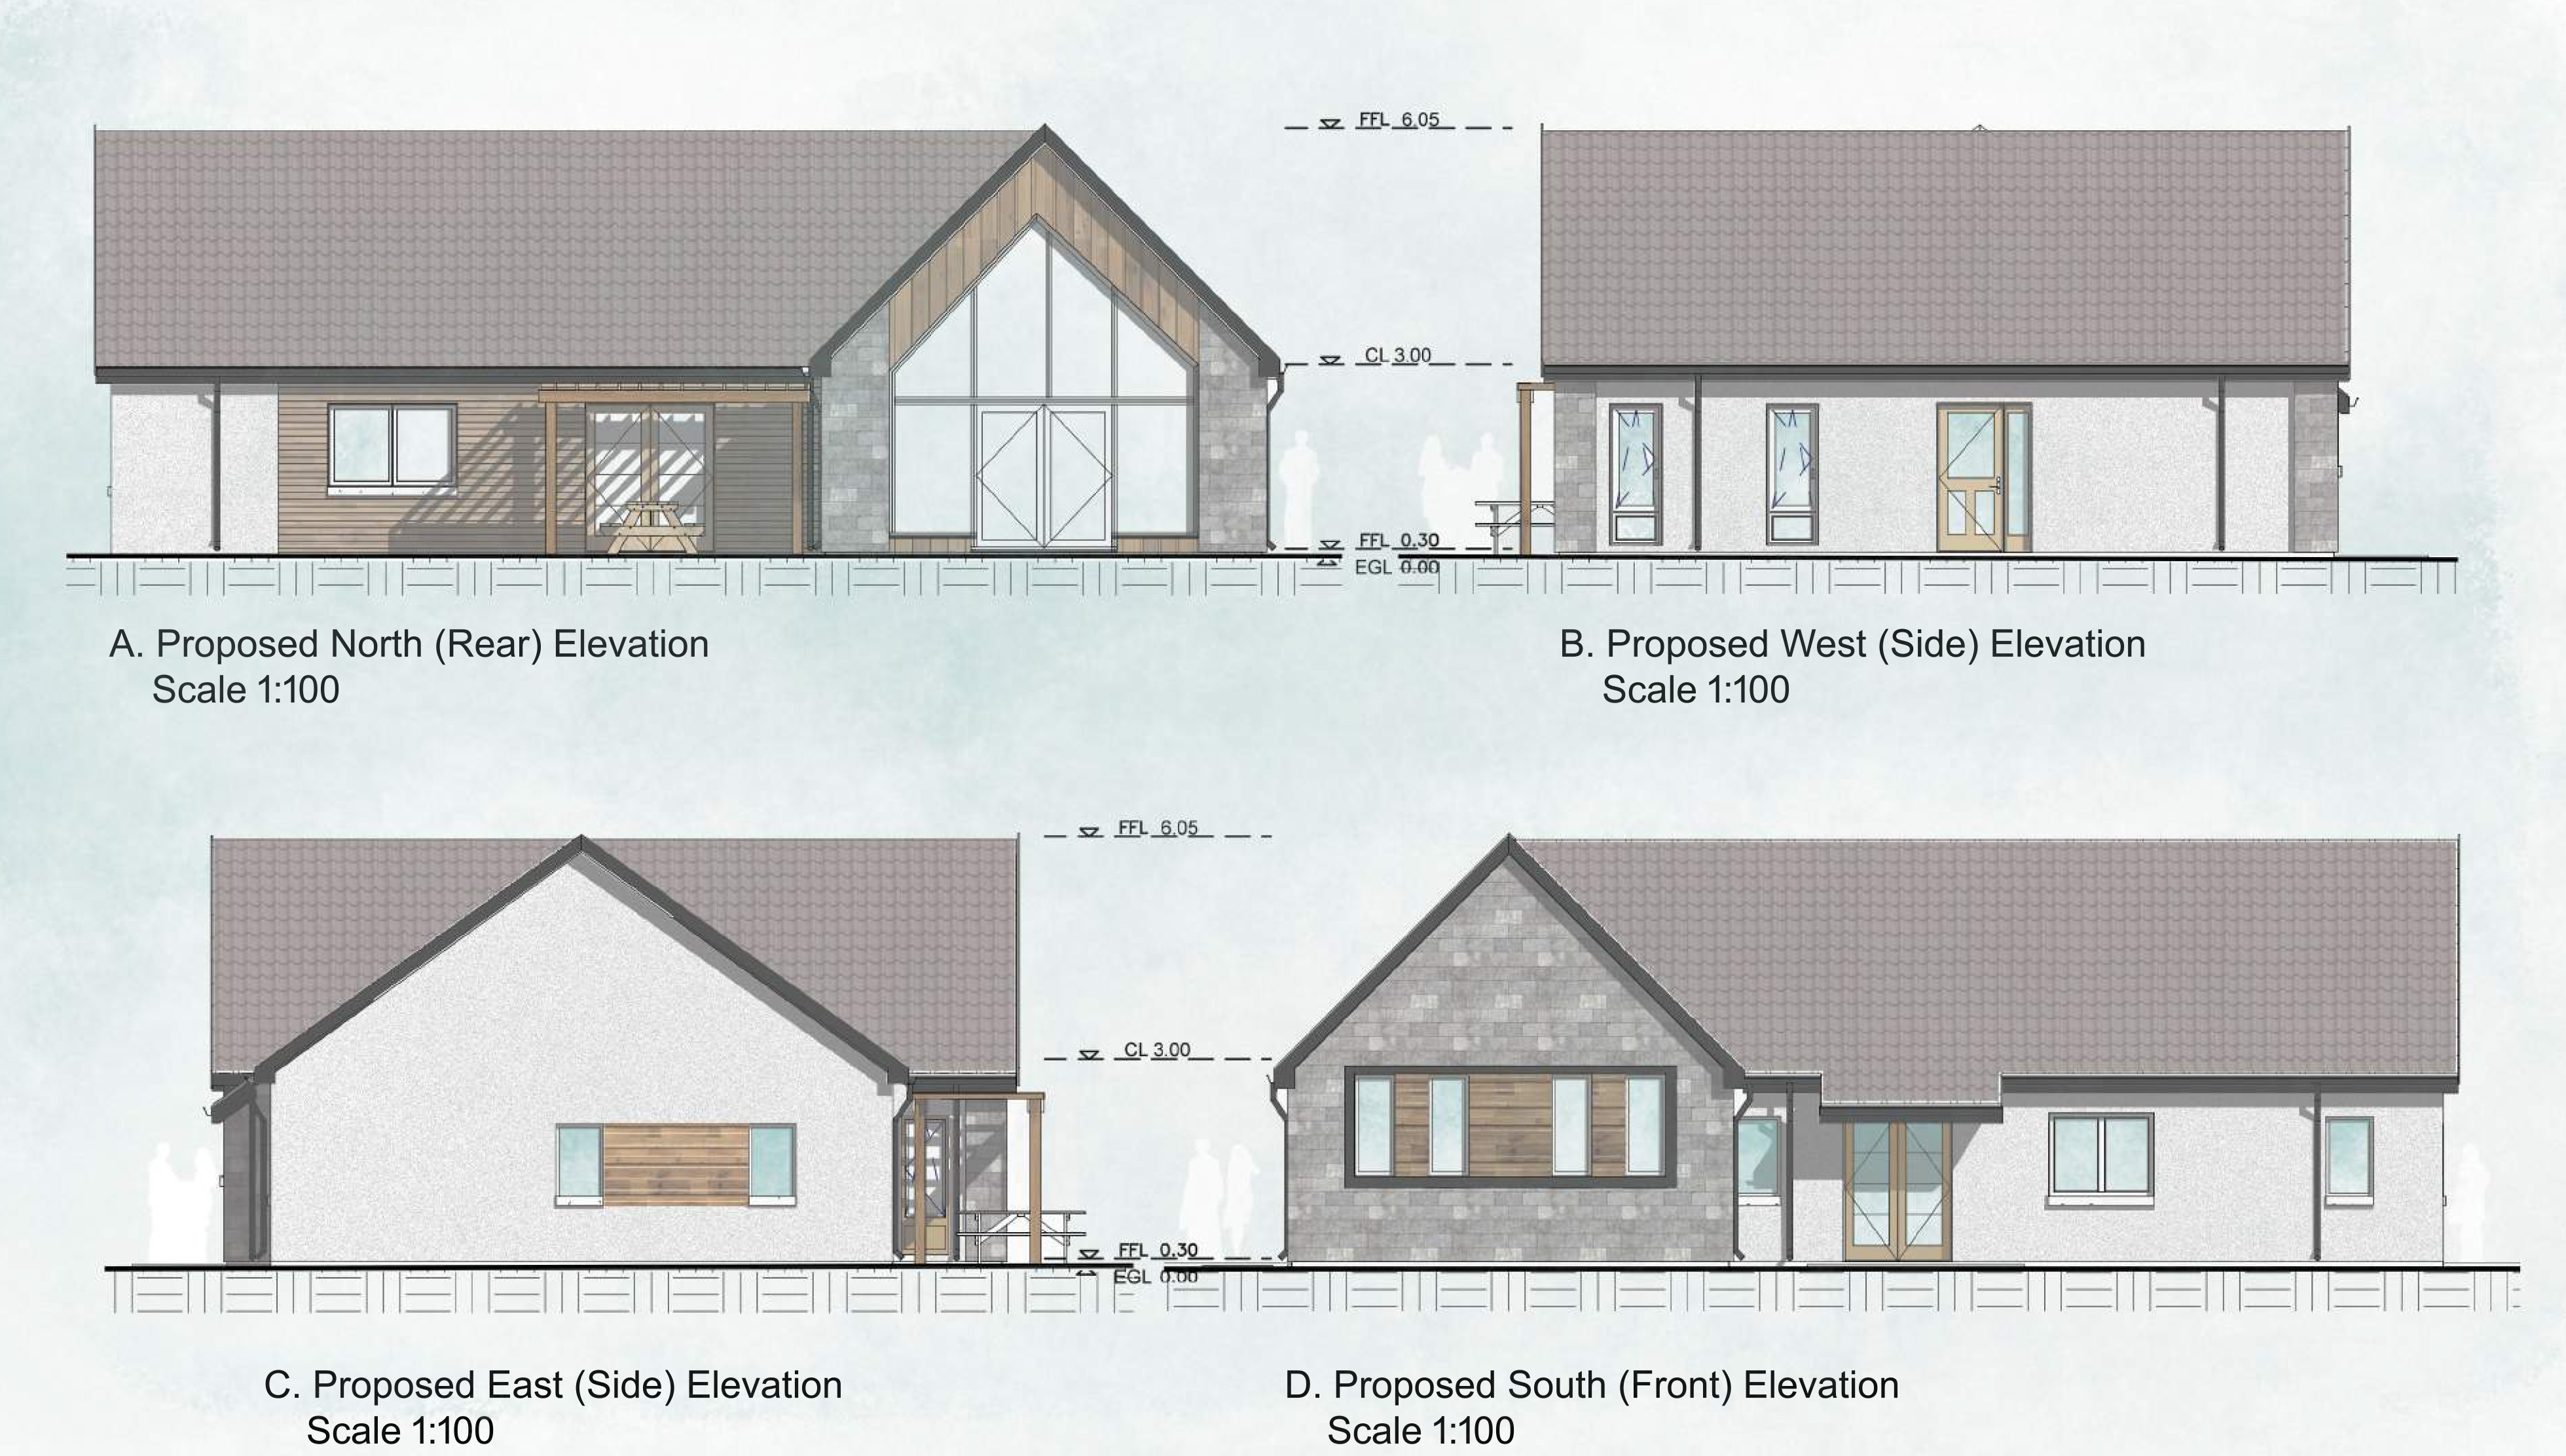 458 AP 210 Proposed Elevations.psd